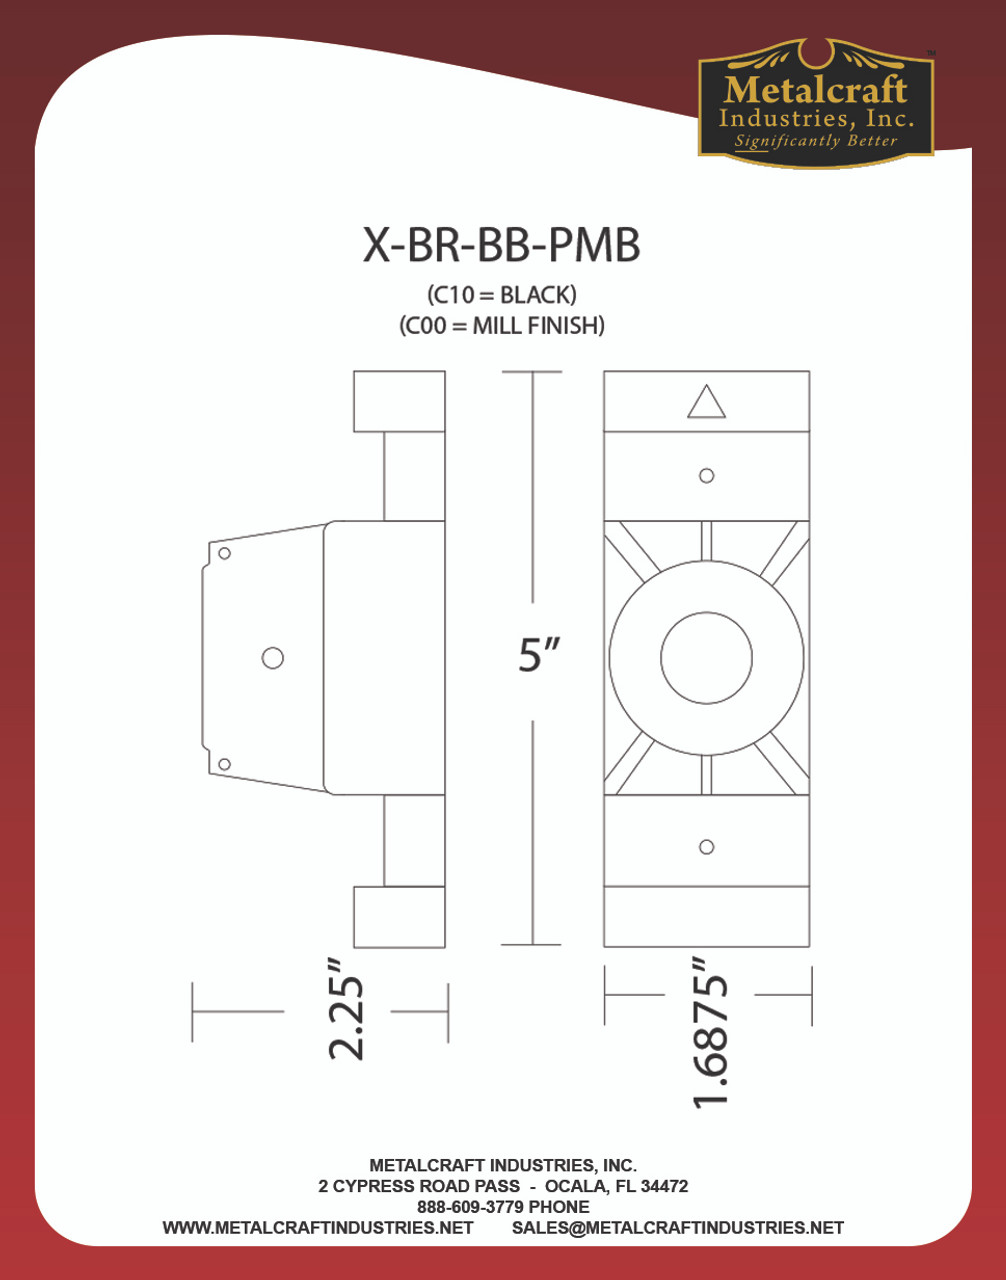 POLE MOUNT SPECIFICATION